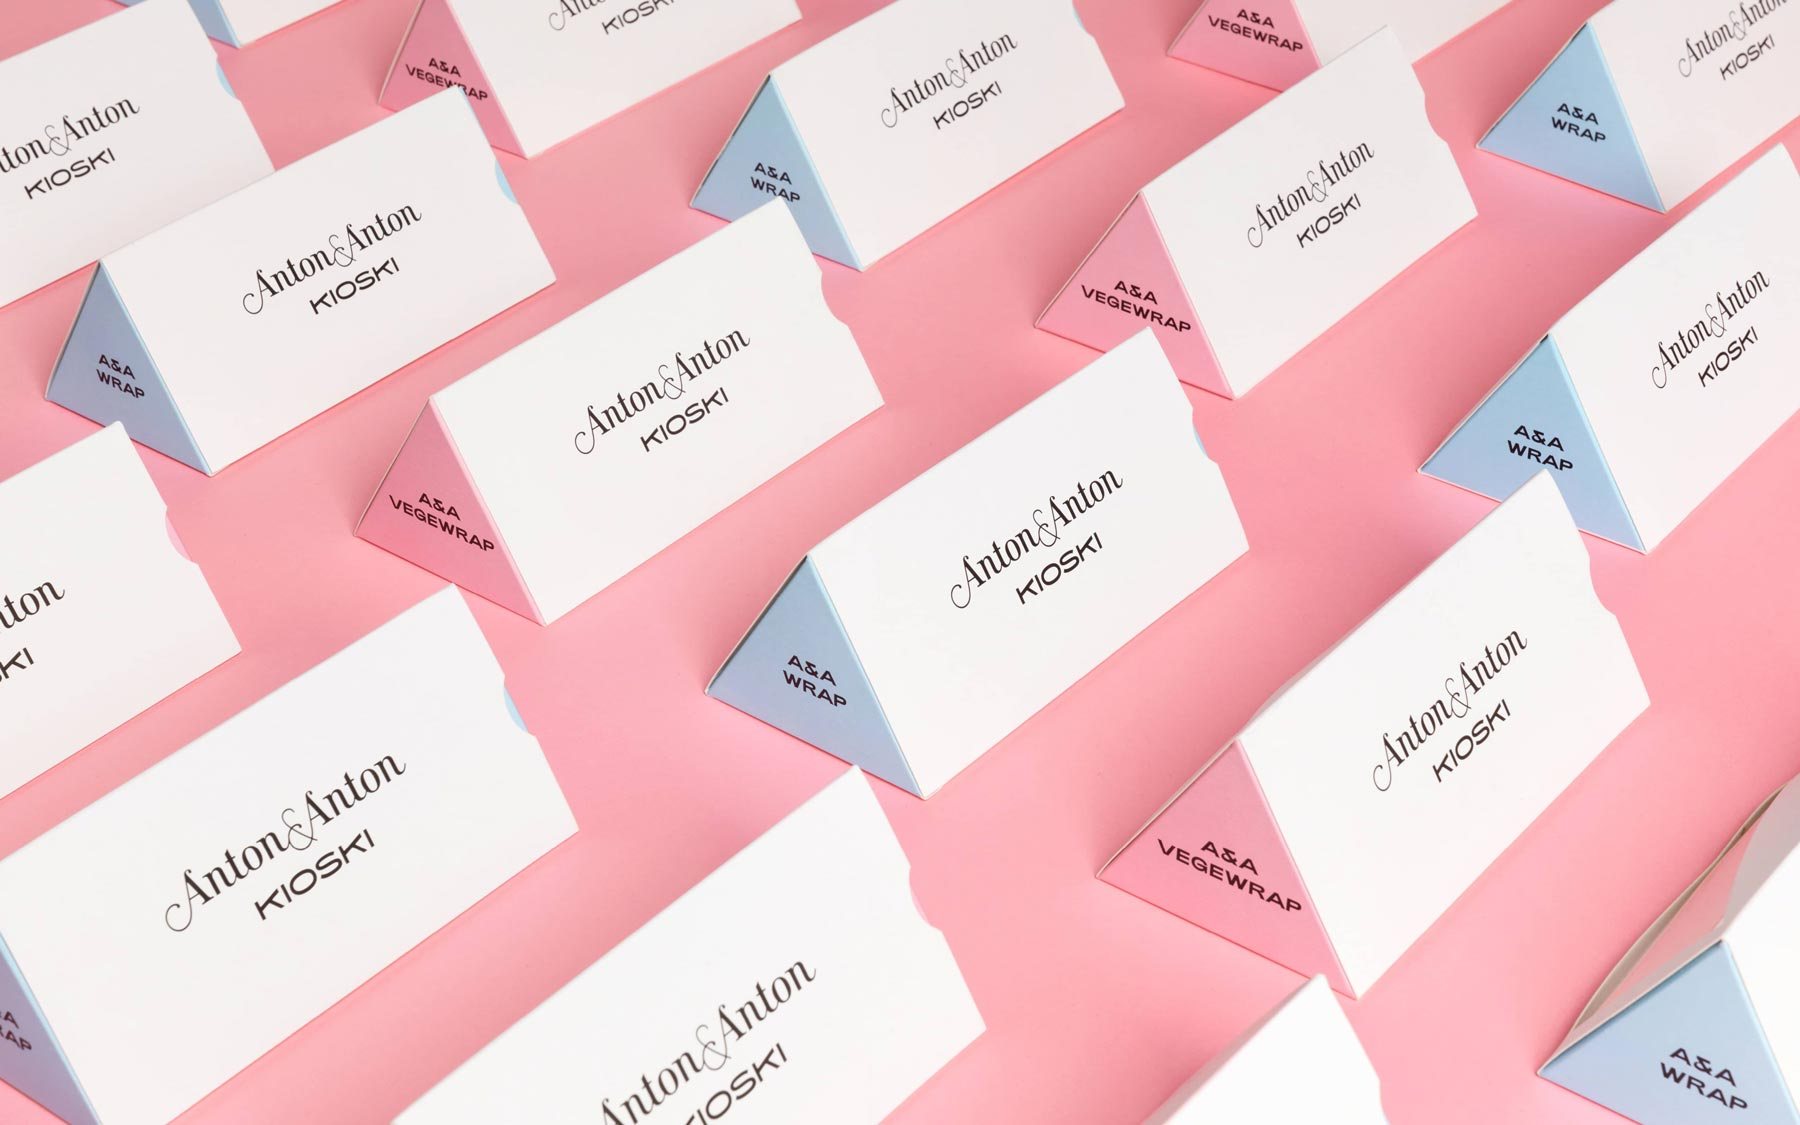 Anton&Anton packaging by Bond Agency and Framme